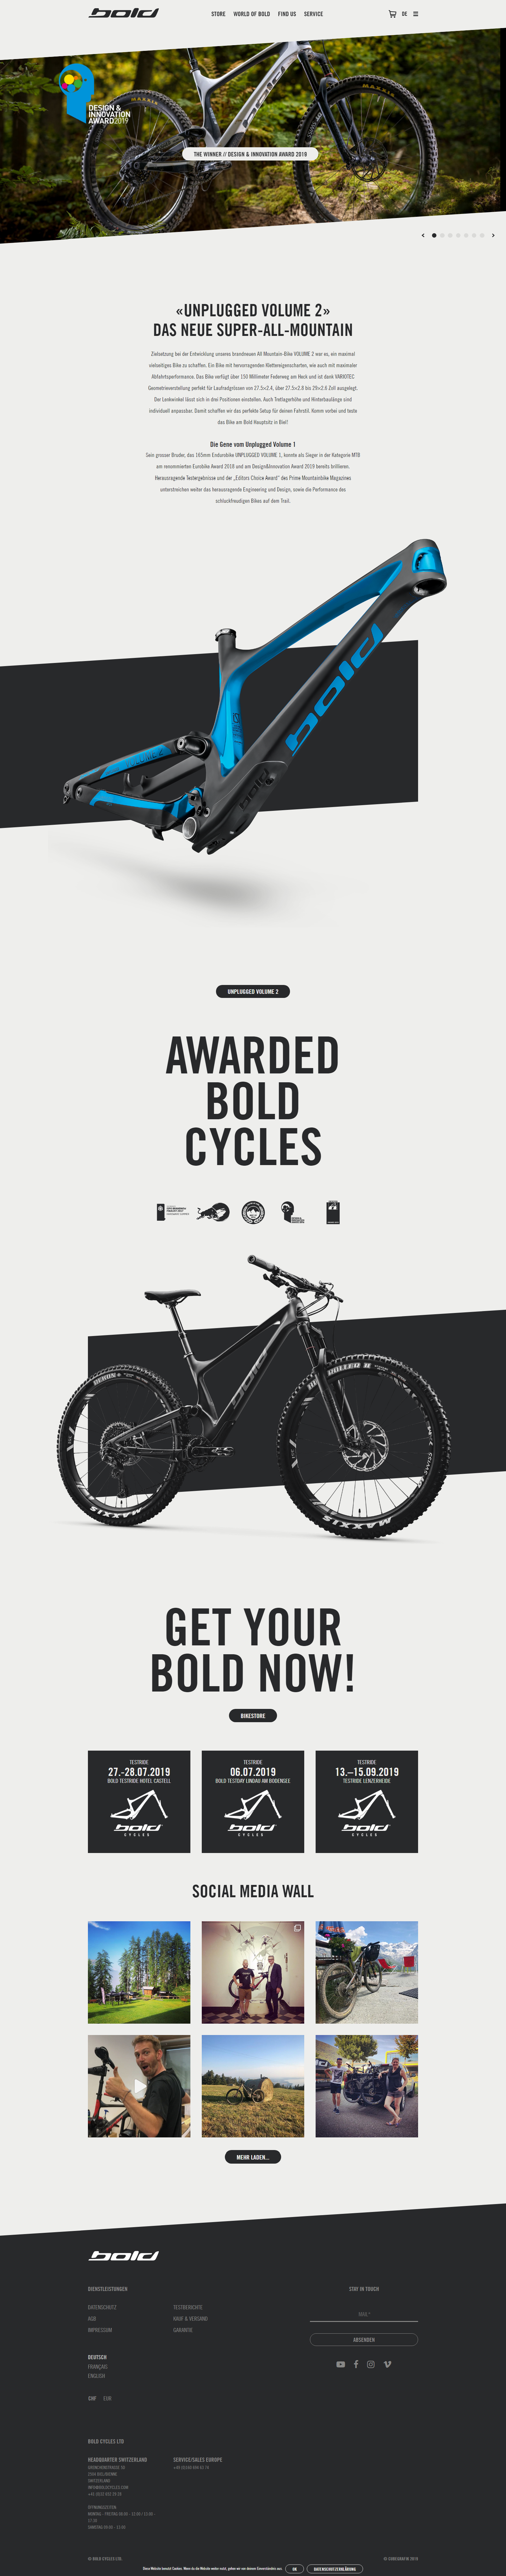 Bold Cycles